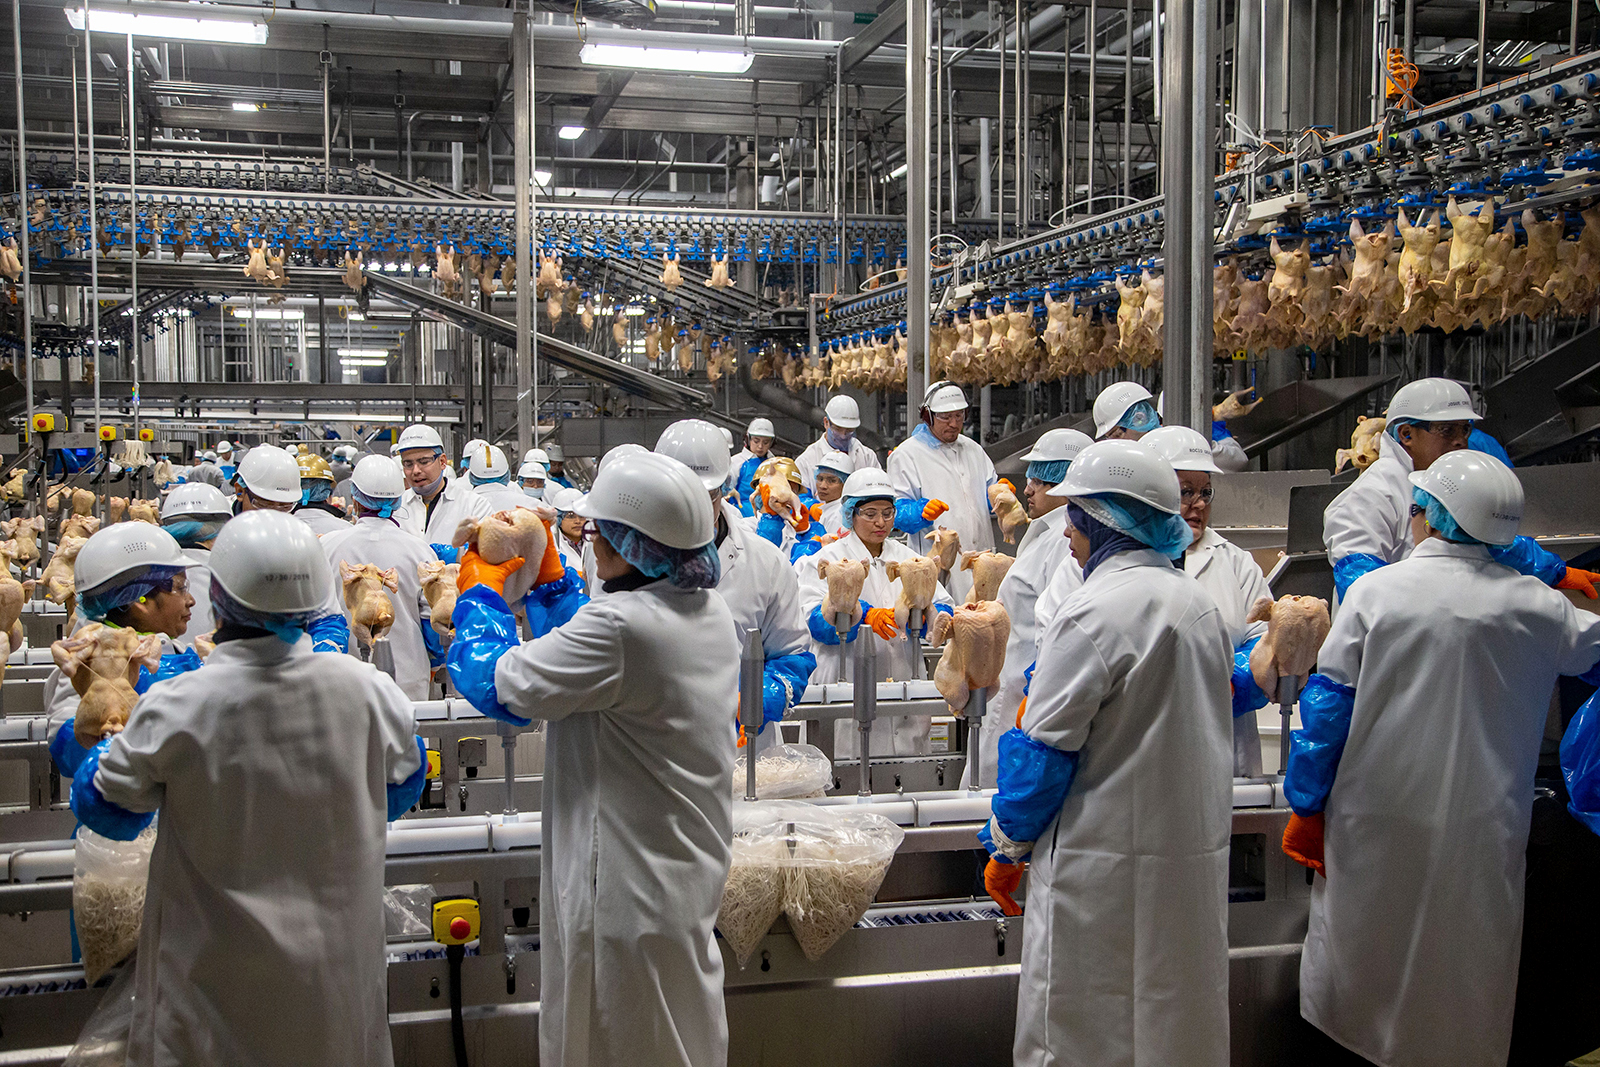 Workers process around 200,000 chickens a day for Costco at the Lincoln PremiumPoultryplant in Fremont, Nebraska on February 27.